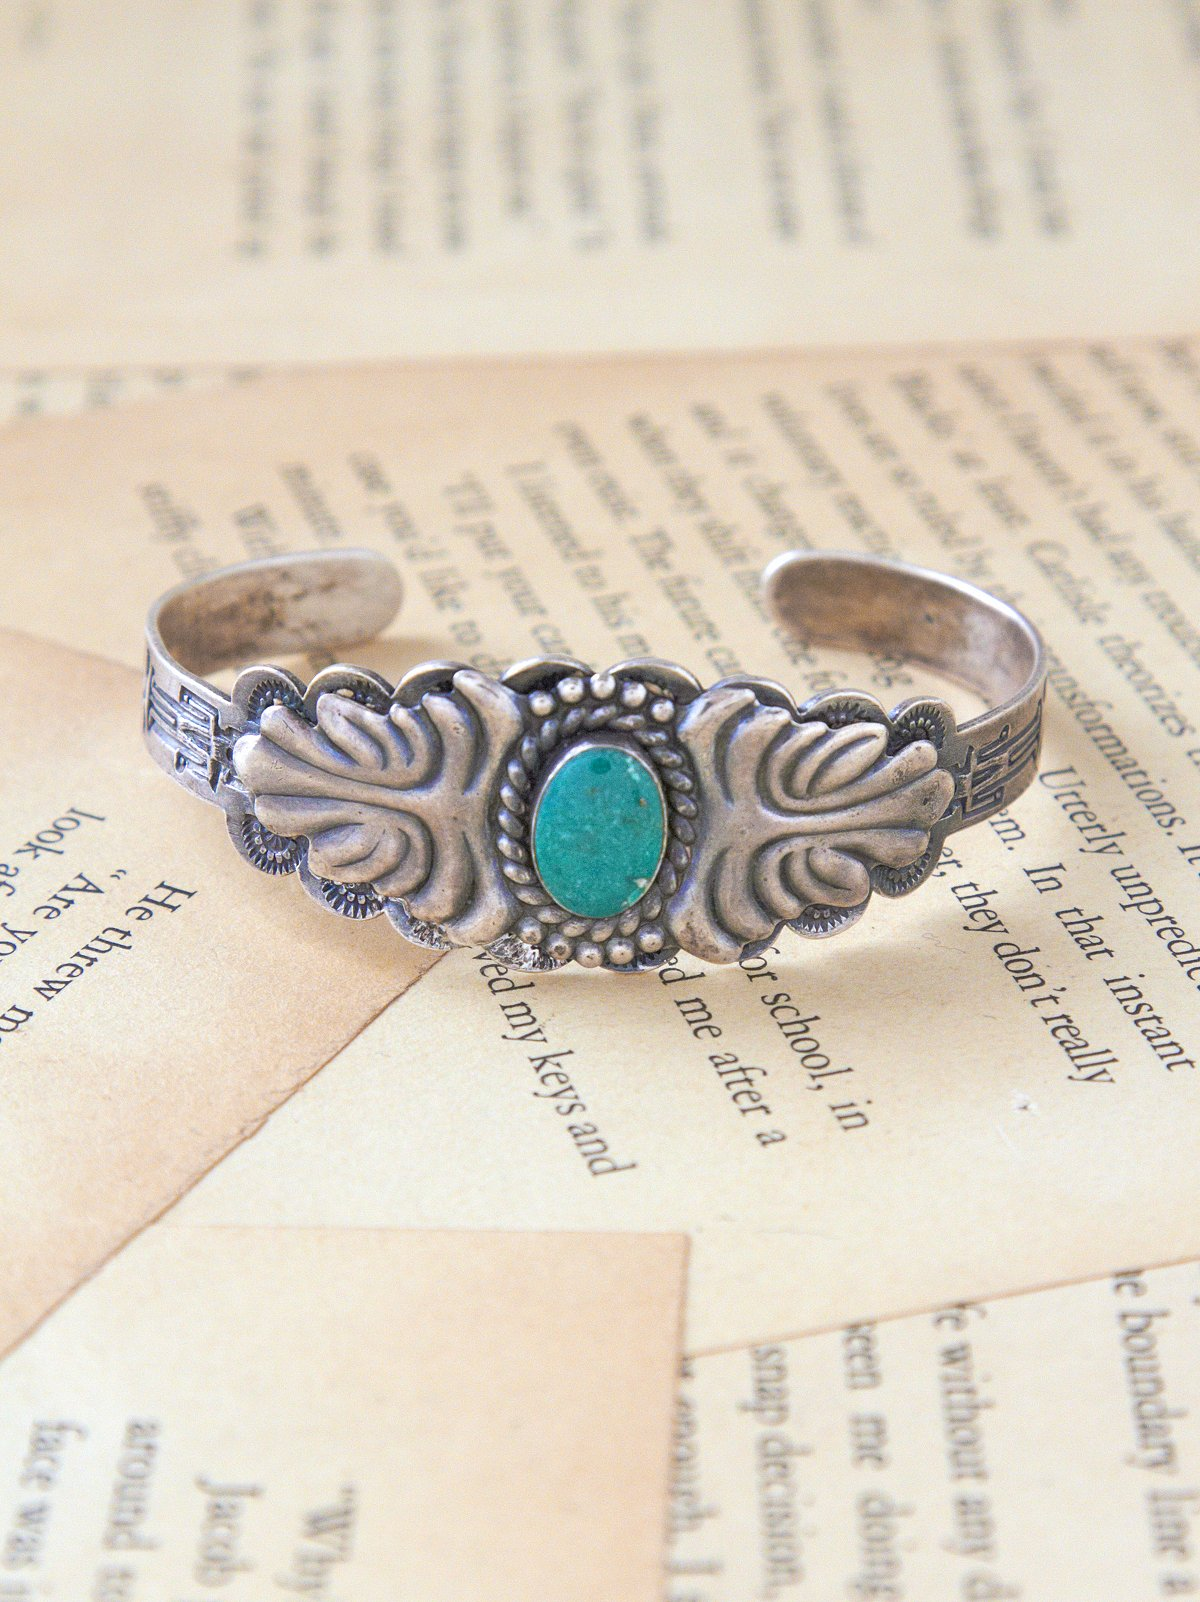 Vintage Natural Trading Post Cuff